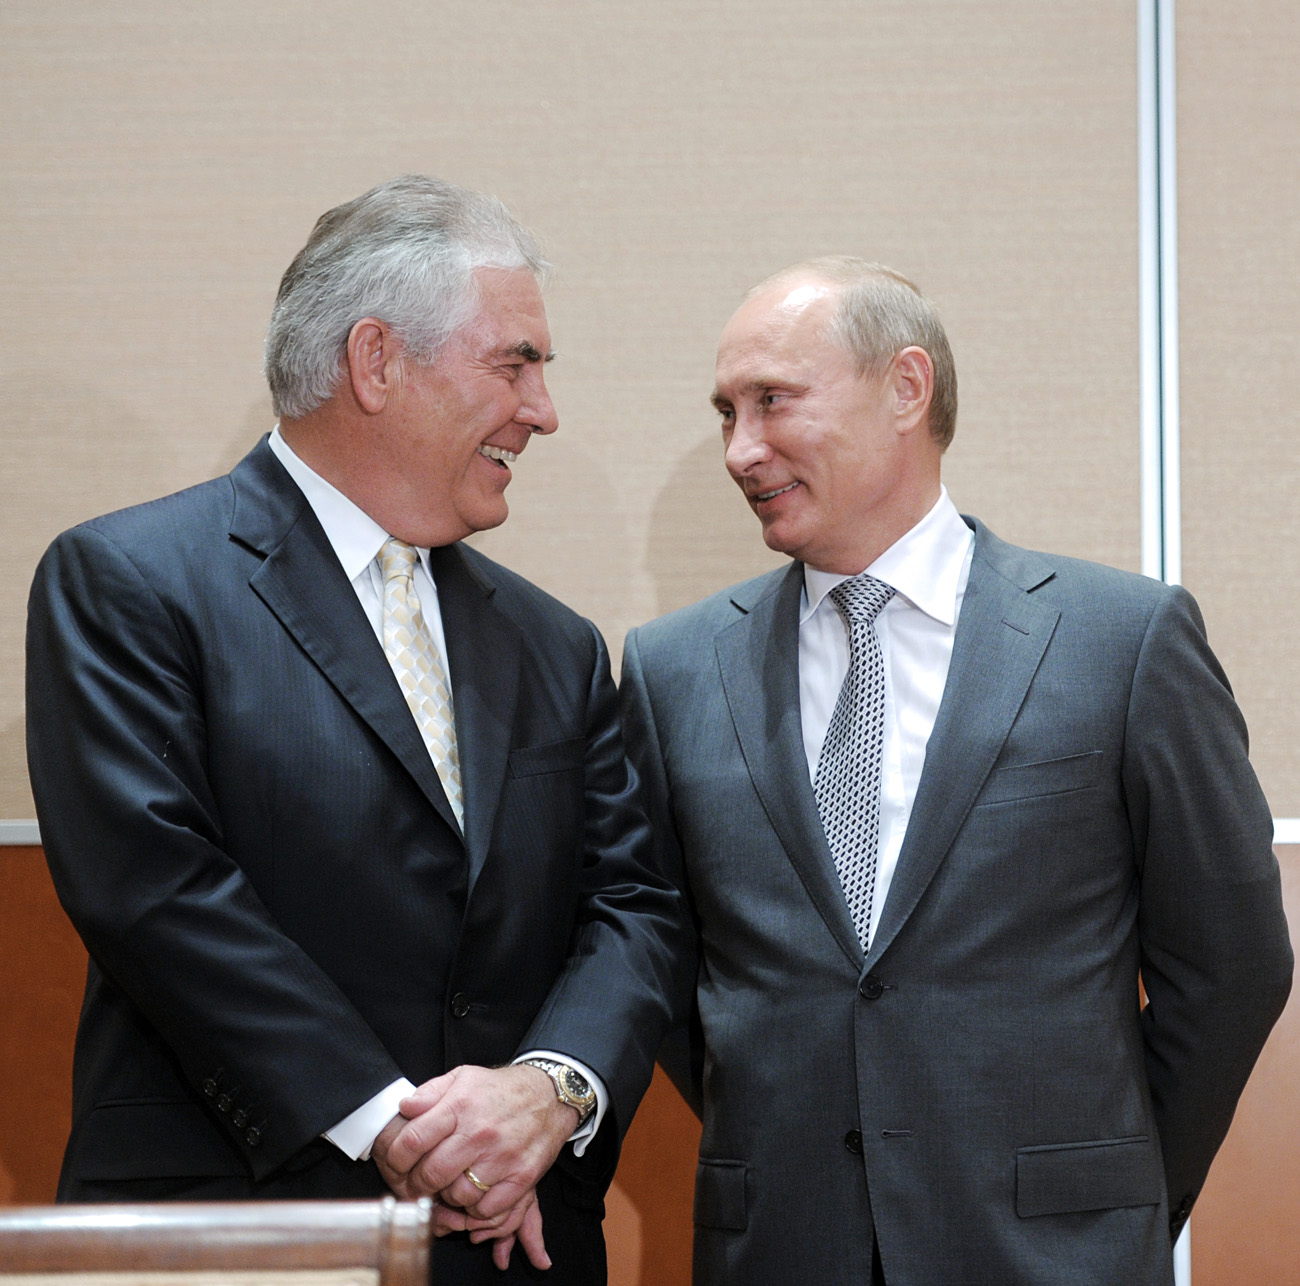 Vladimir Putin and Rex Tillerson attended the ceremony of signing of the Rosneft-ExxonMobil strategic partnership agreement, 2011.